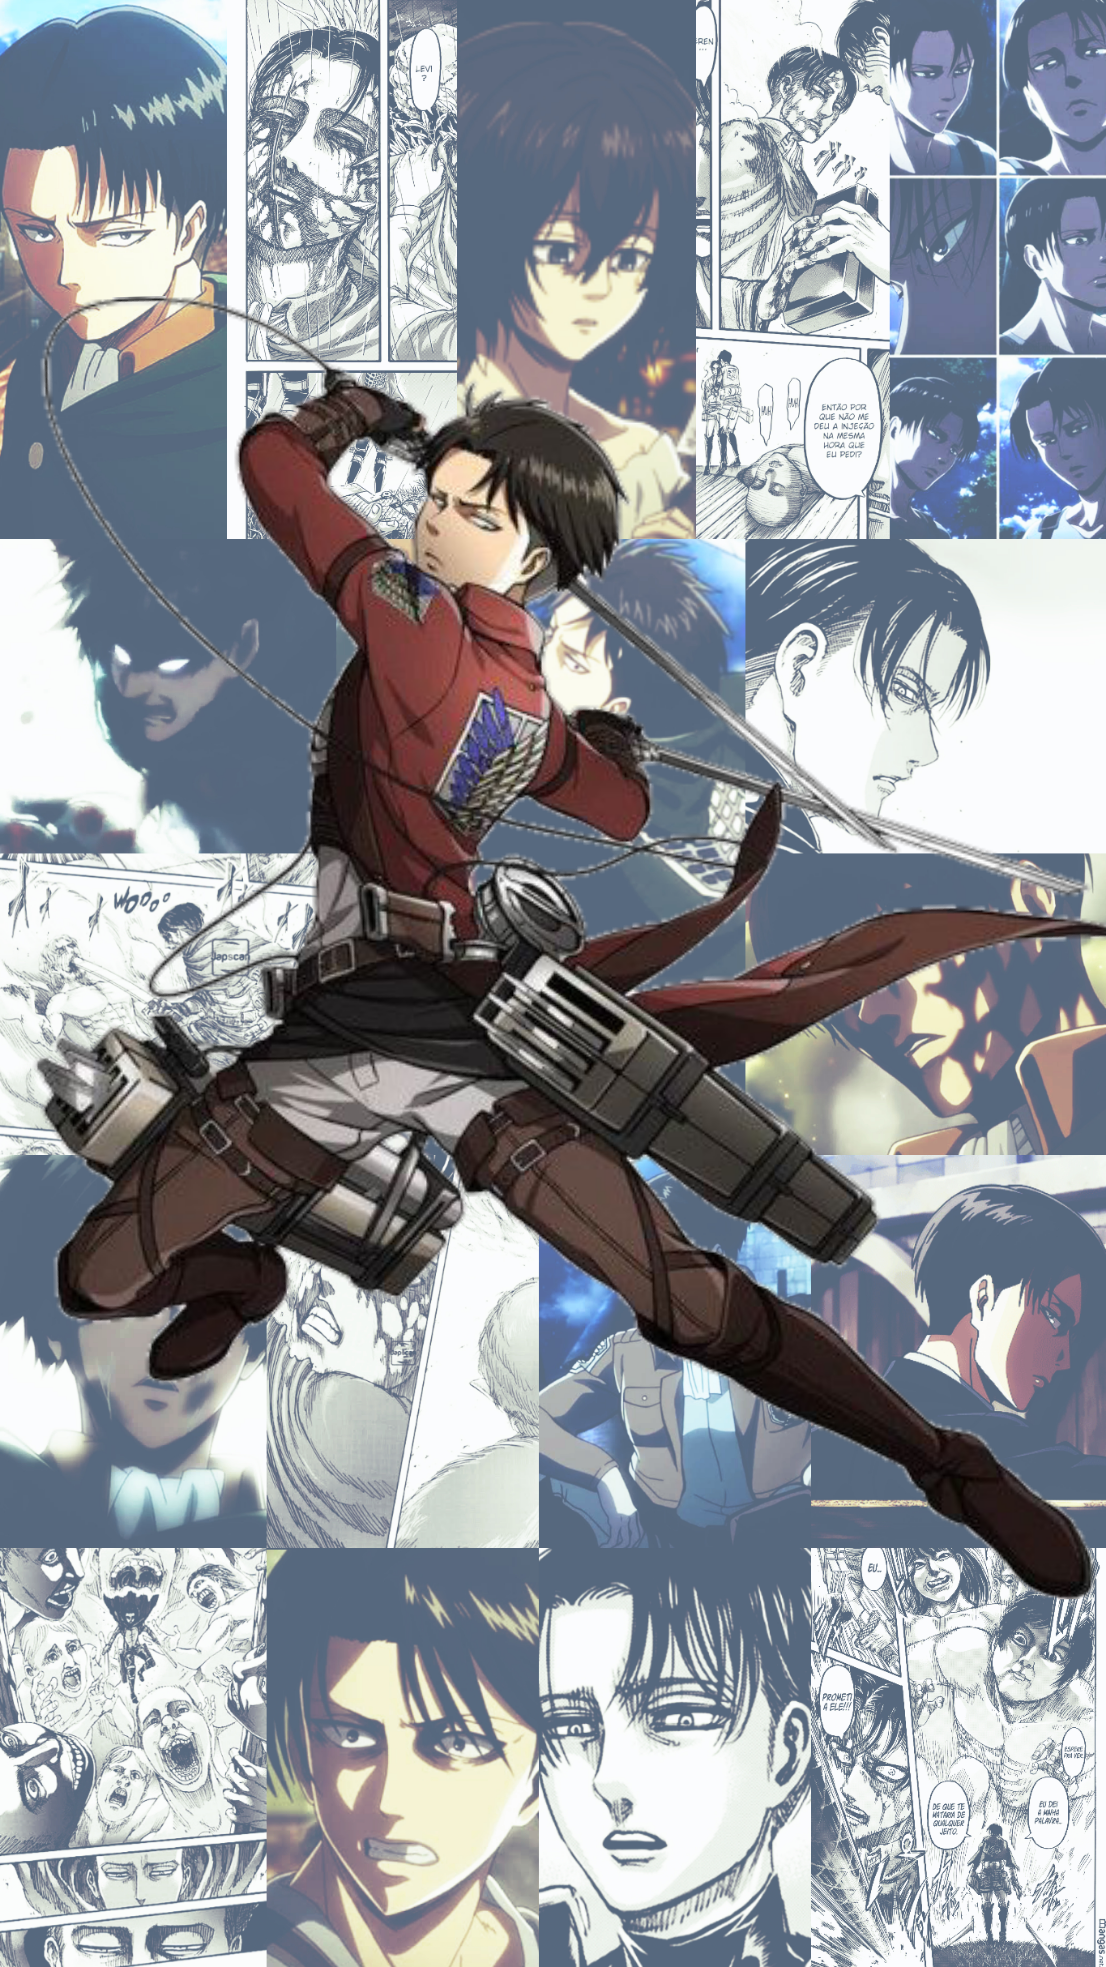 Levi Ackerman Cellphone Wallpaper In 2020 Anime Wallpaper Aot Wallpaper Anime